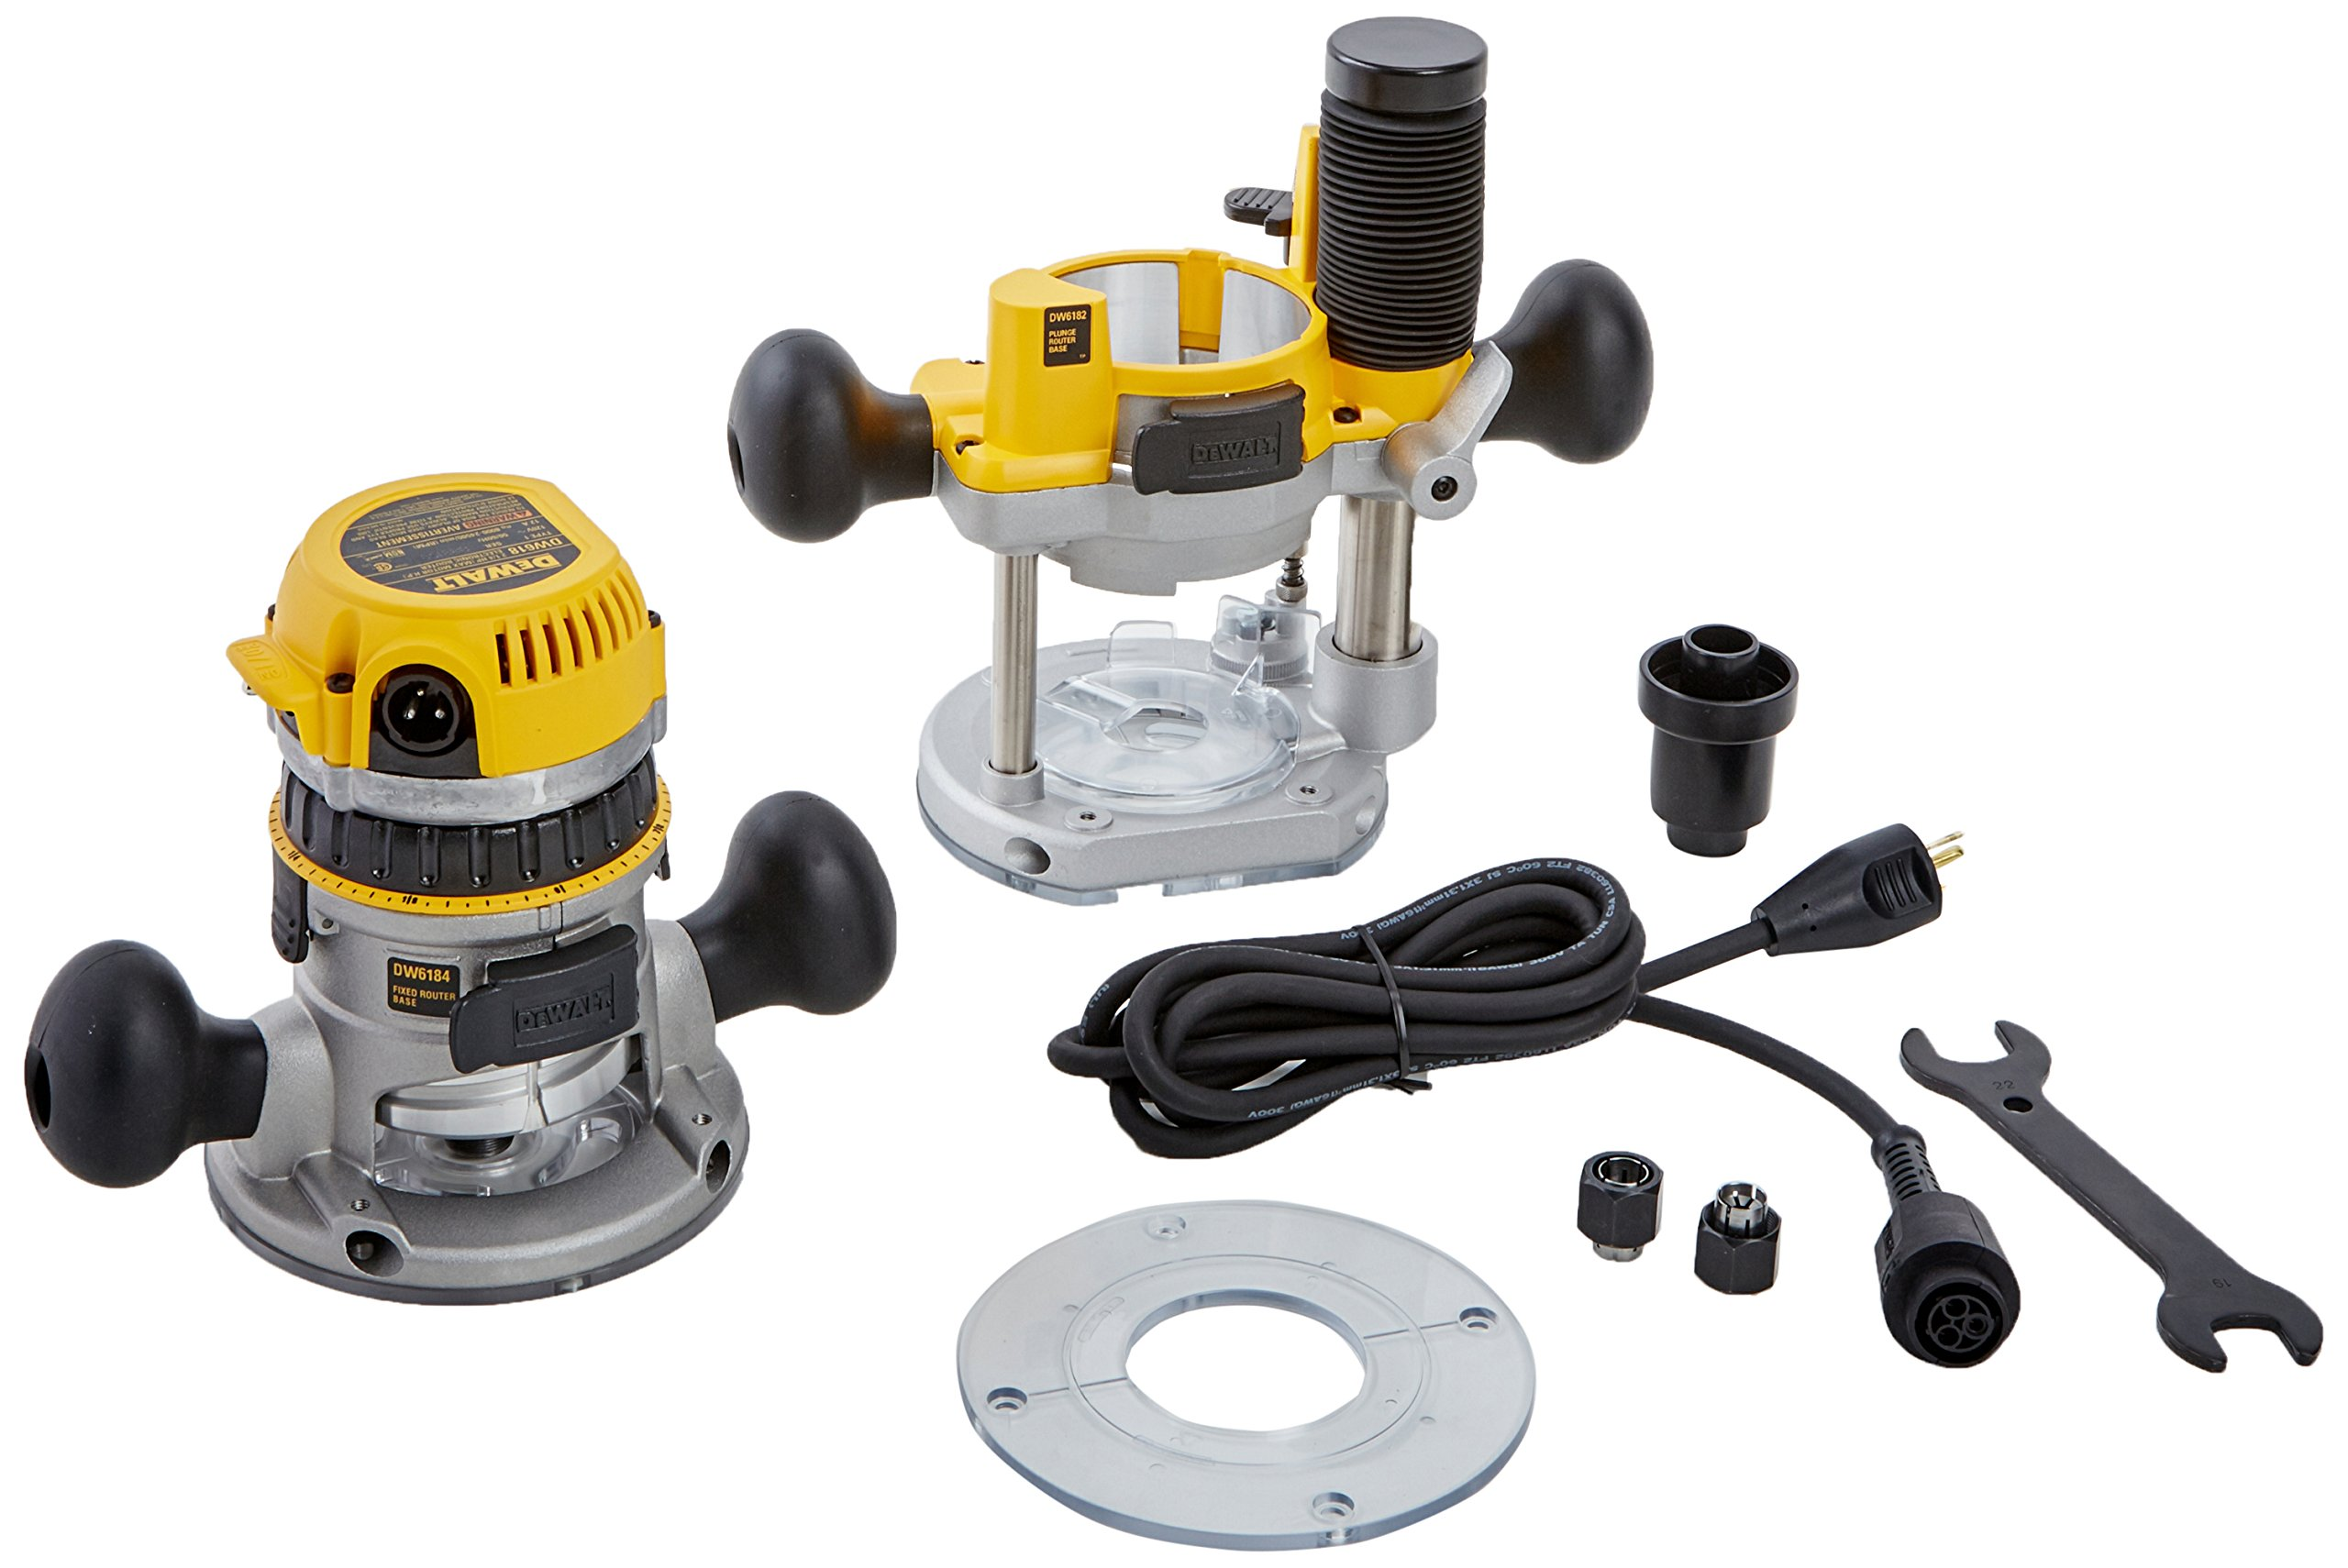 DEWALT DW618PK 12-AMP 2-1/4 HP Plunge and Fixed-Base Variable-Speed Router Kit by DEWALT